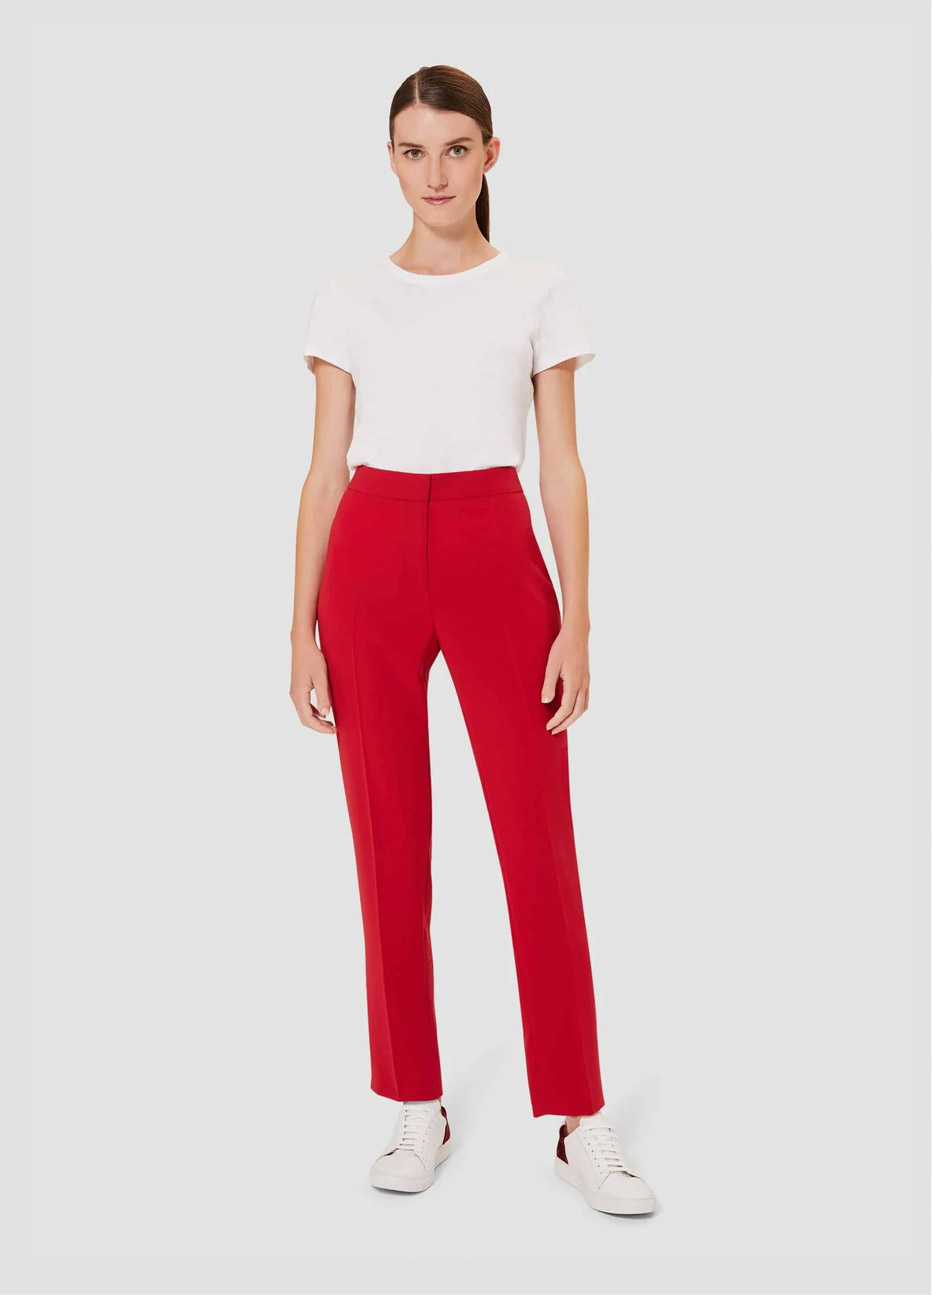 White tshirt with red tailored trousers worn with white trainers by Hobbs.